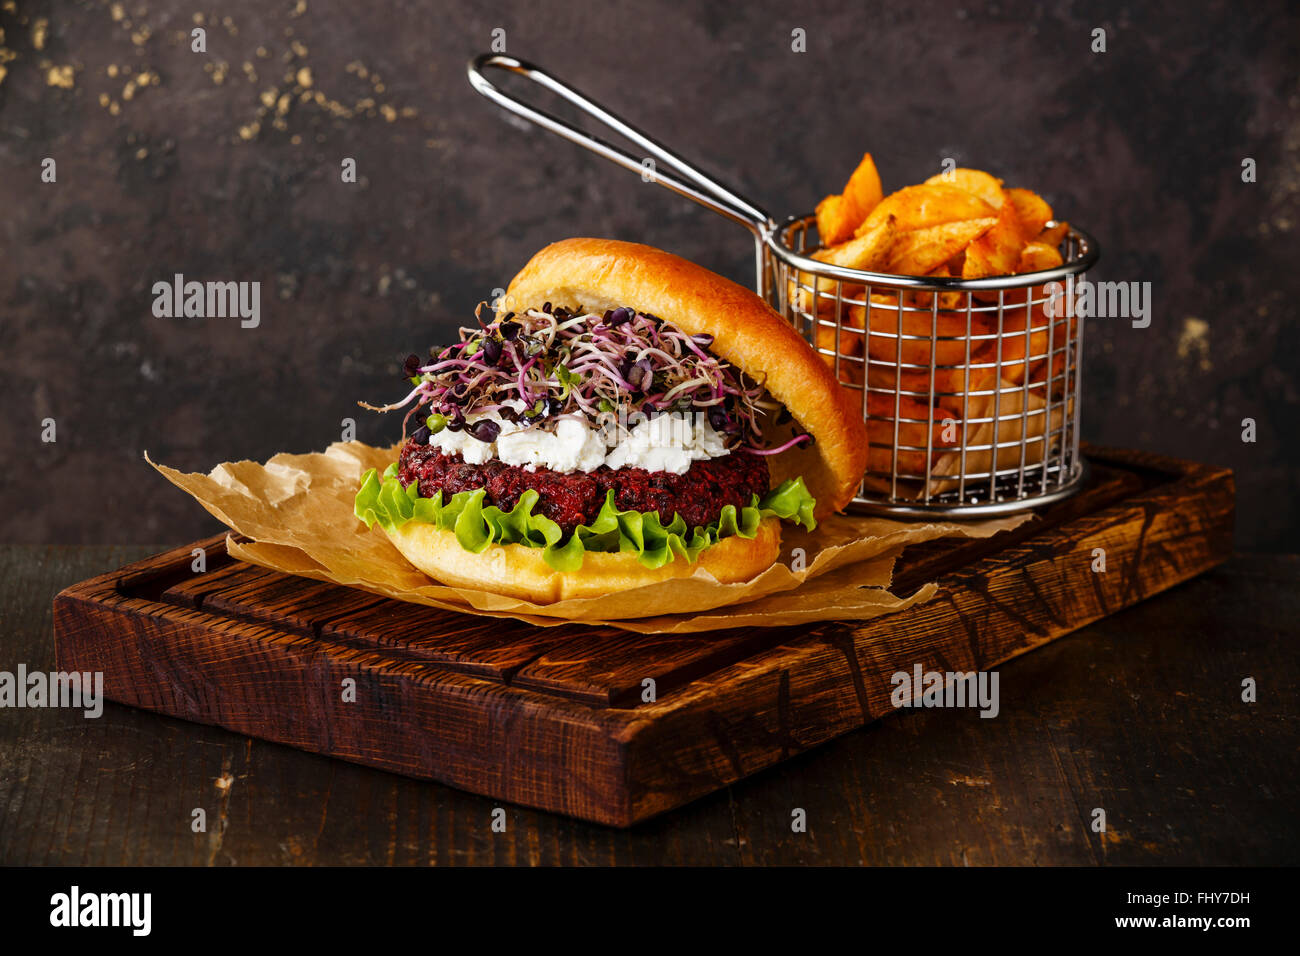 Beet burger with soft cheese radish sprouts and potato wedges on dark background - Stock Image